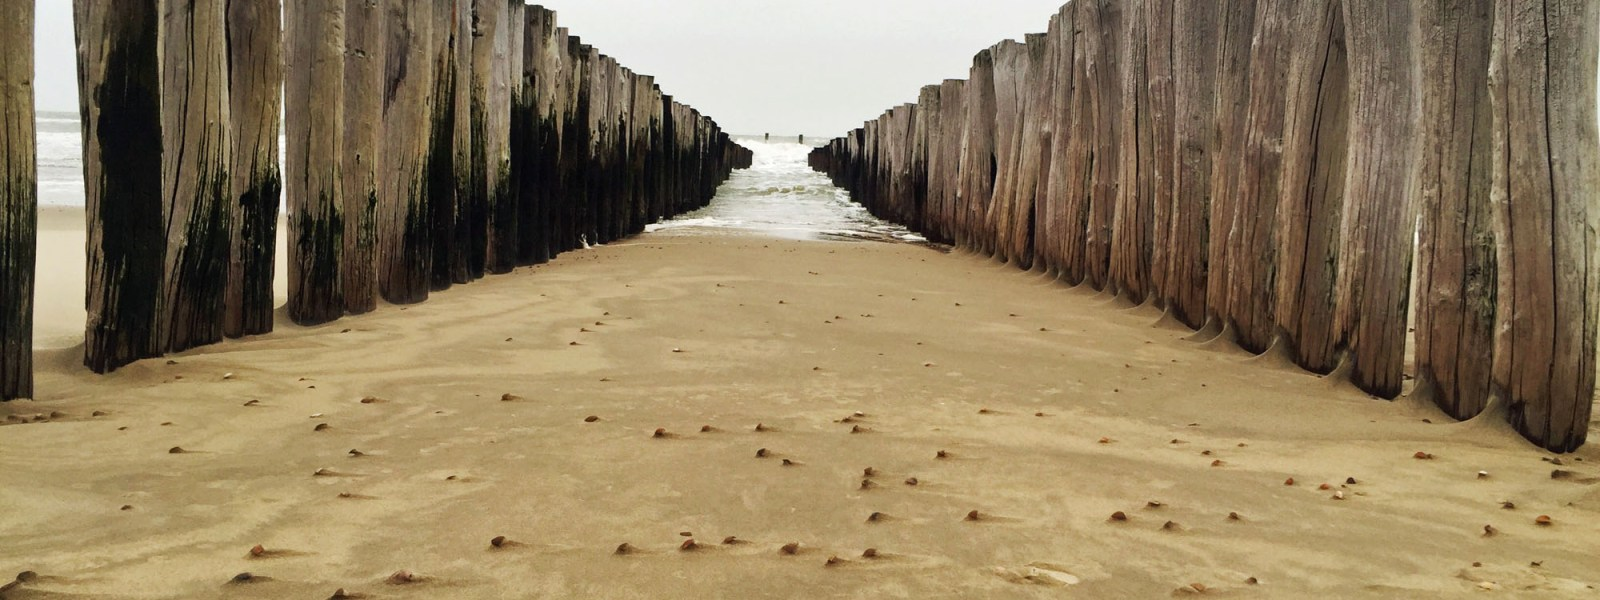 Oostkapelle am Strand